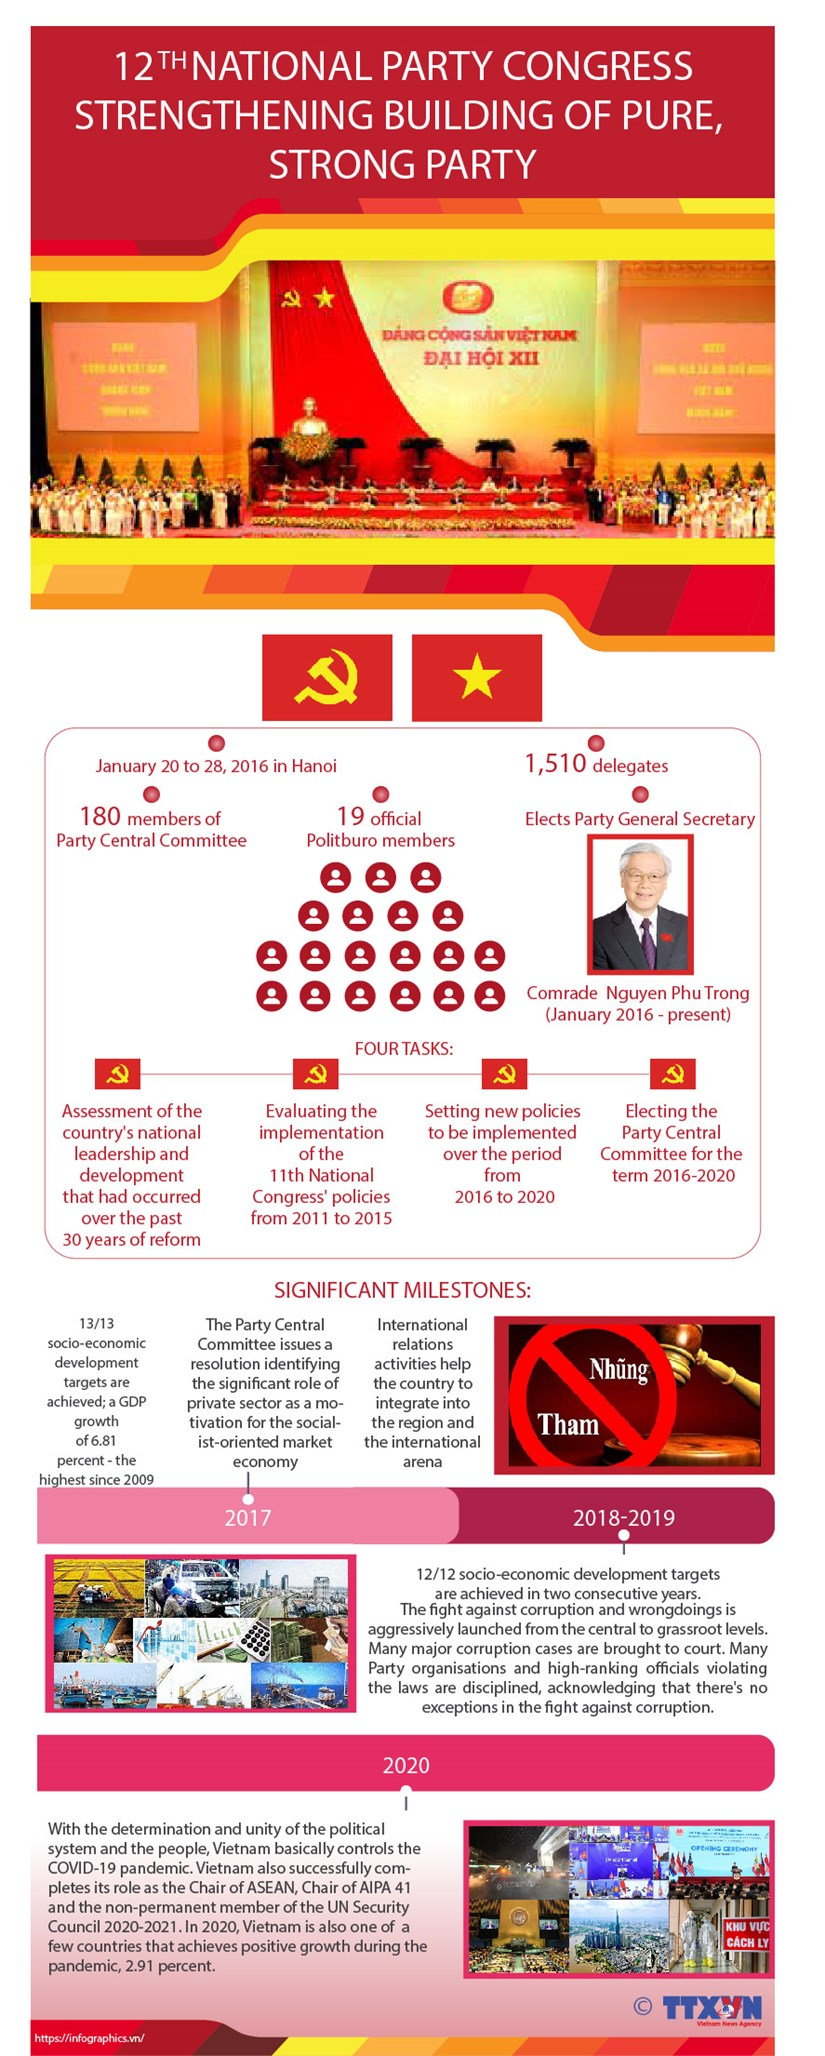 12th Party Congress: Strengthening building of pure, strong Party hinh anh 1